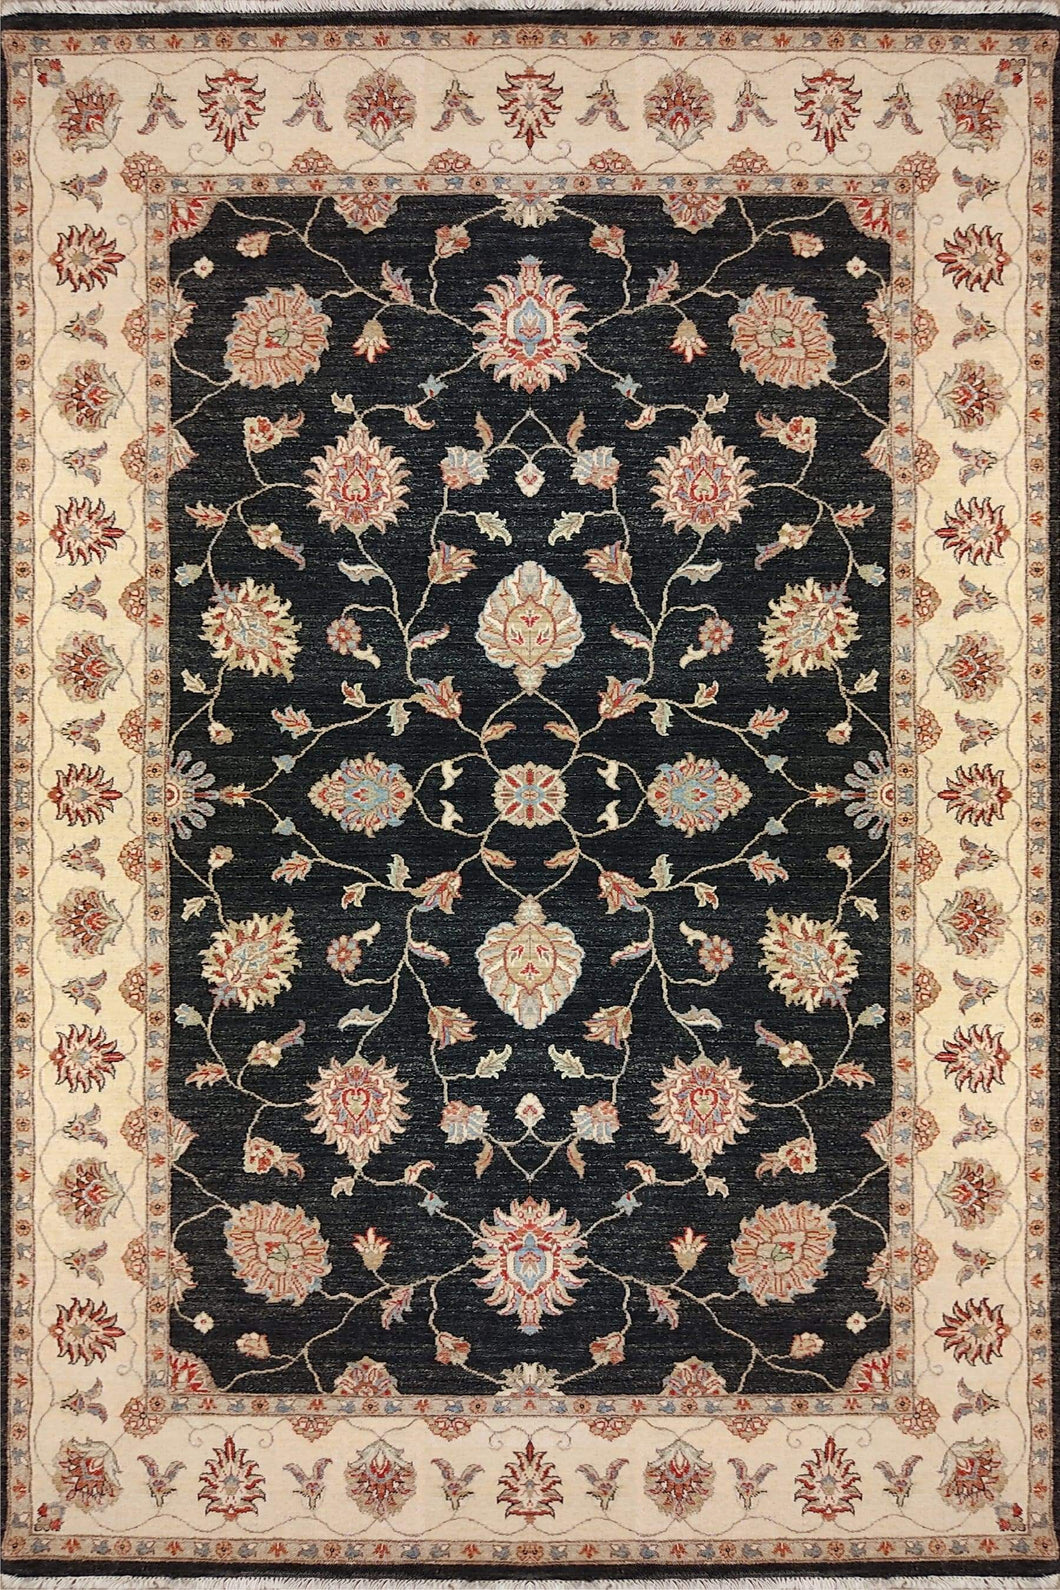 The Rugs Cafe Carpets 6x9 / Black Chobi Hightwist Rug Black